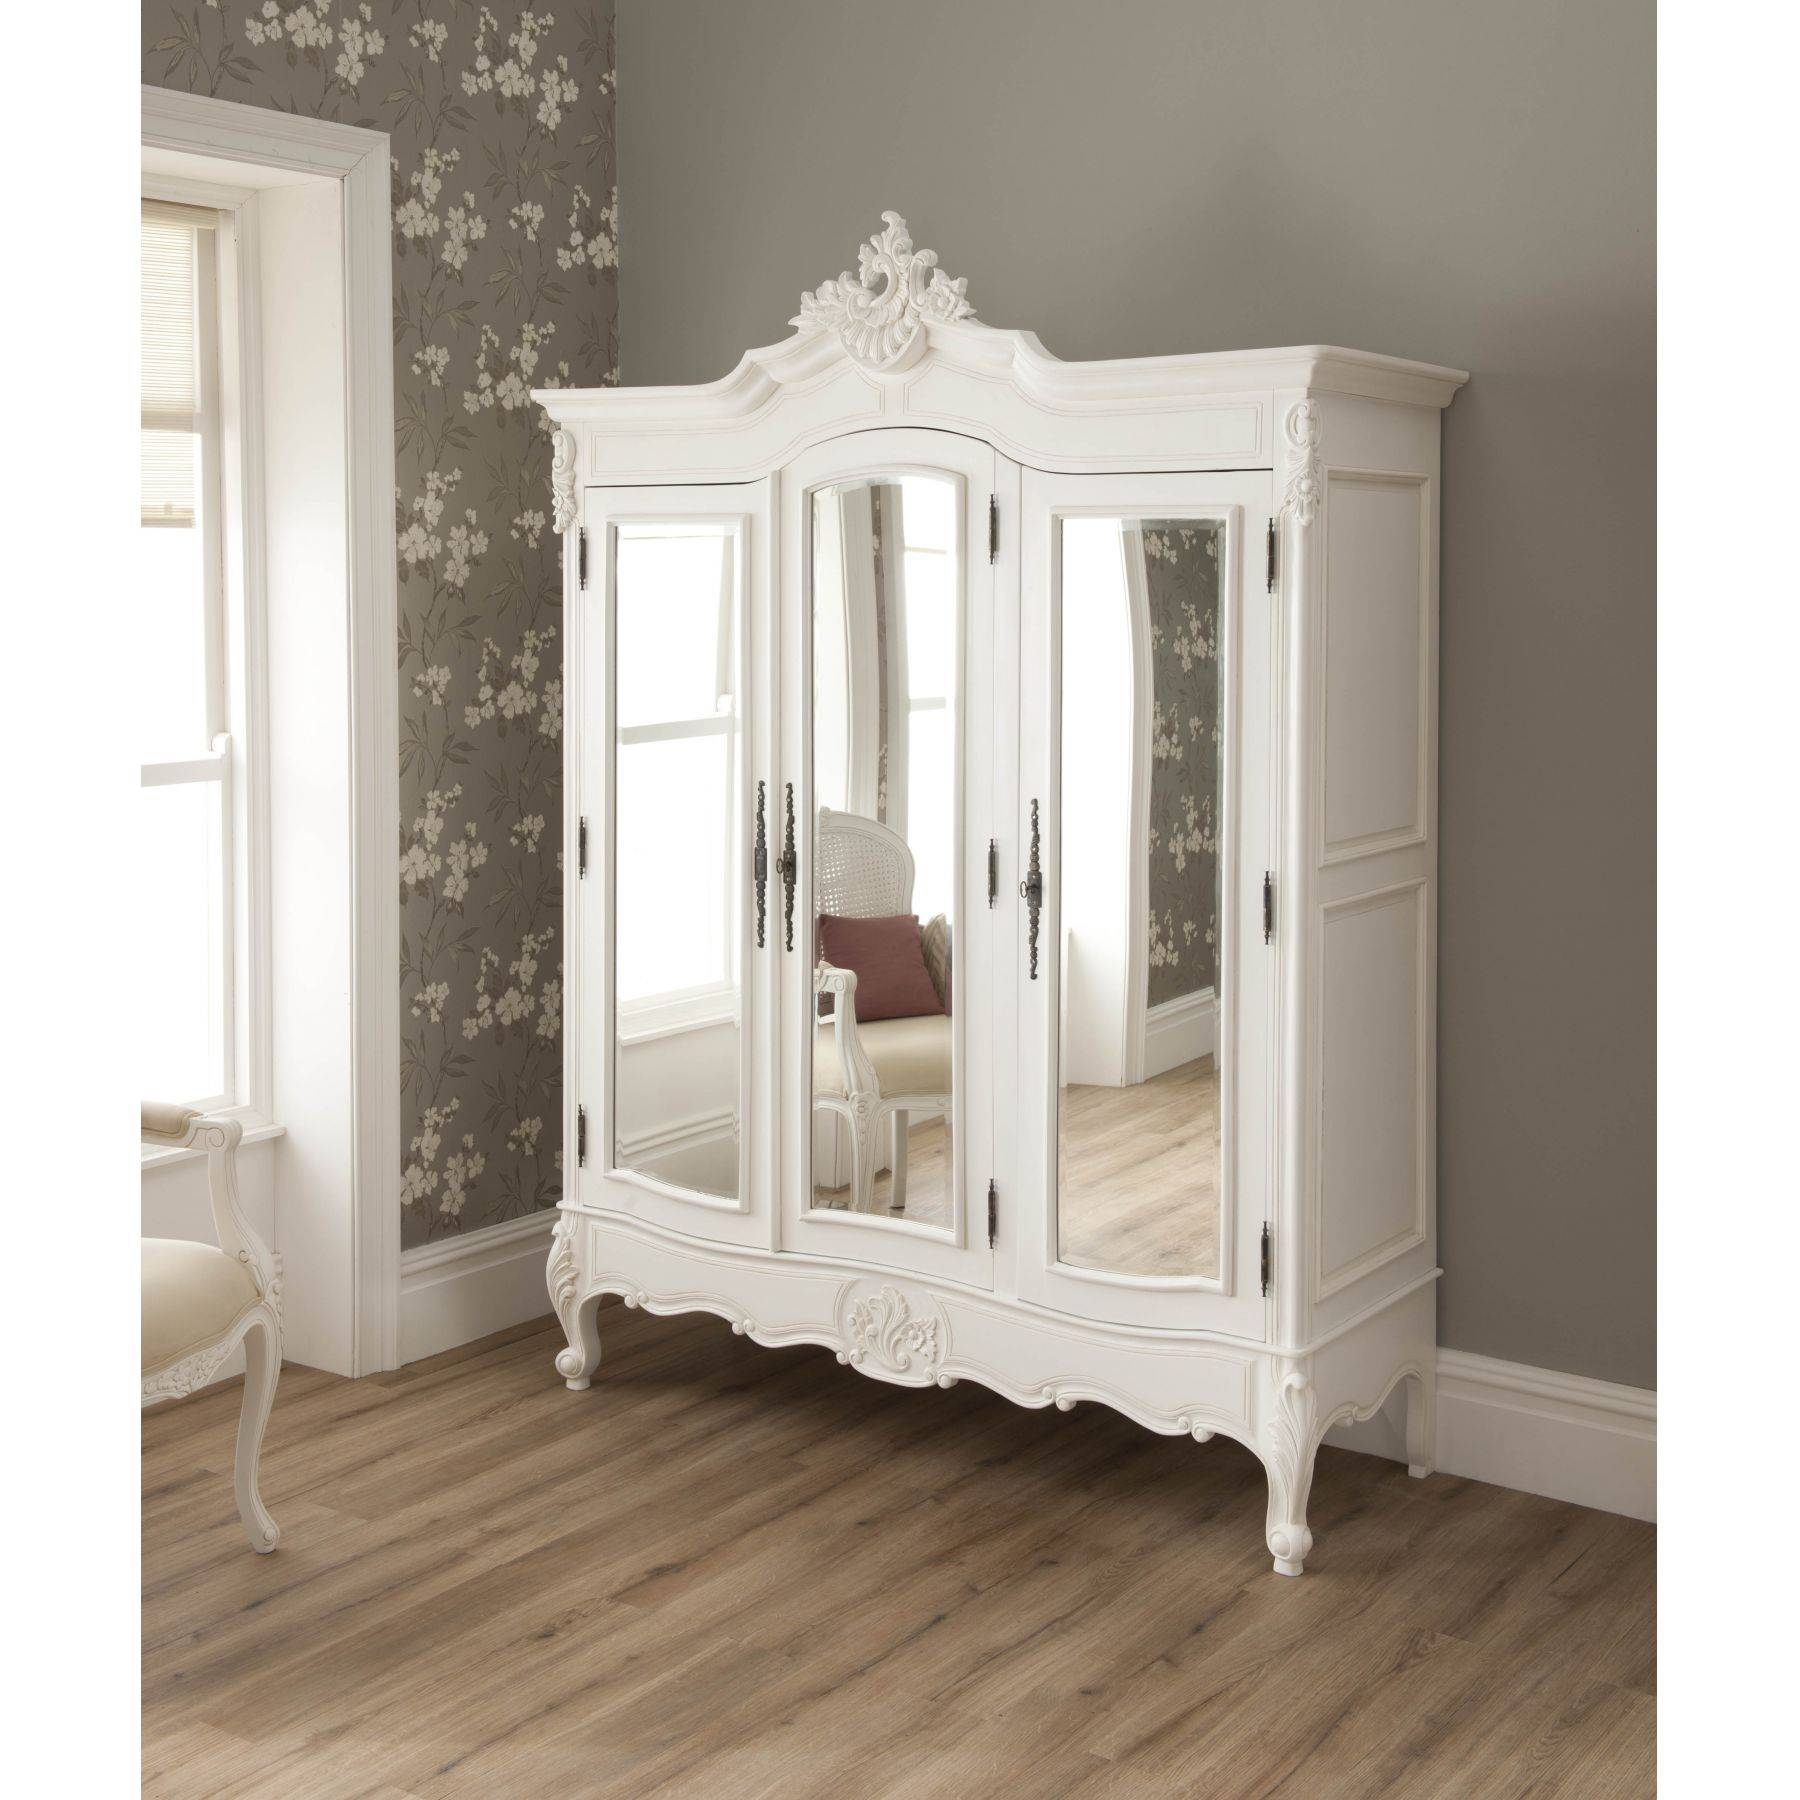 La Rochelle Shabby Chic Antique Style Wardrobe | Shabby Chic Furniture pertaining to French Style White Wardrobes (Image 9 of 15)